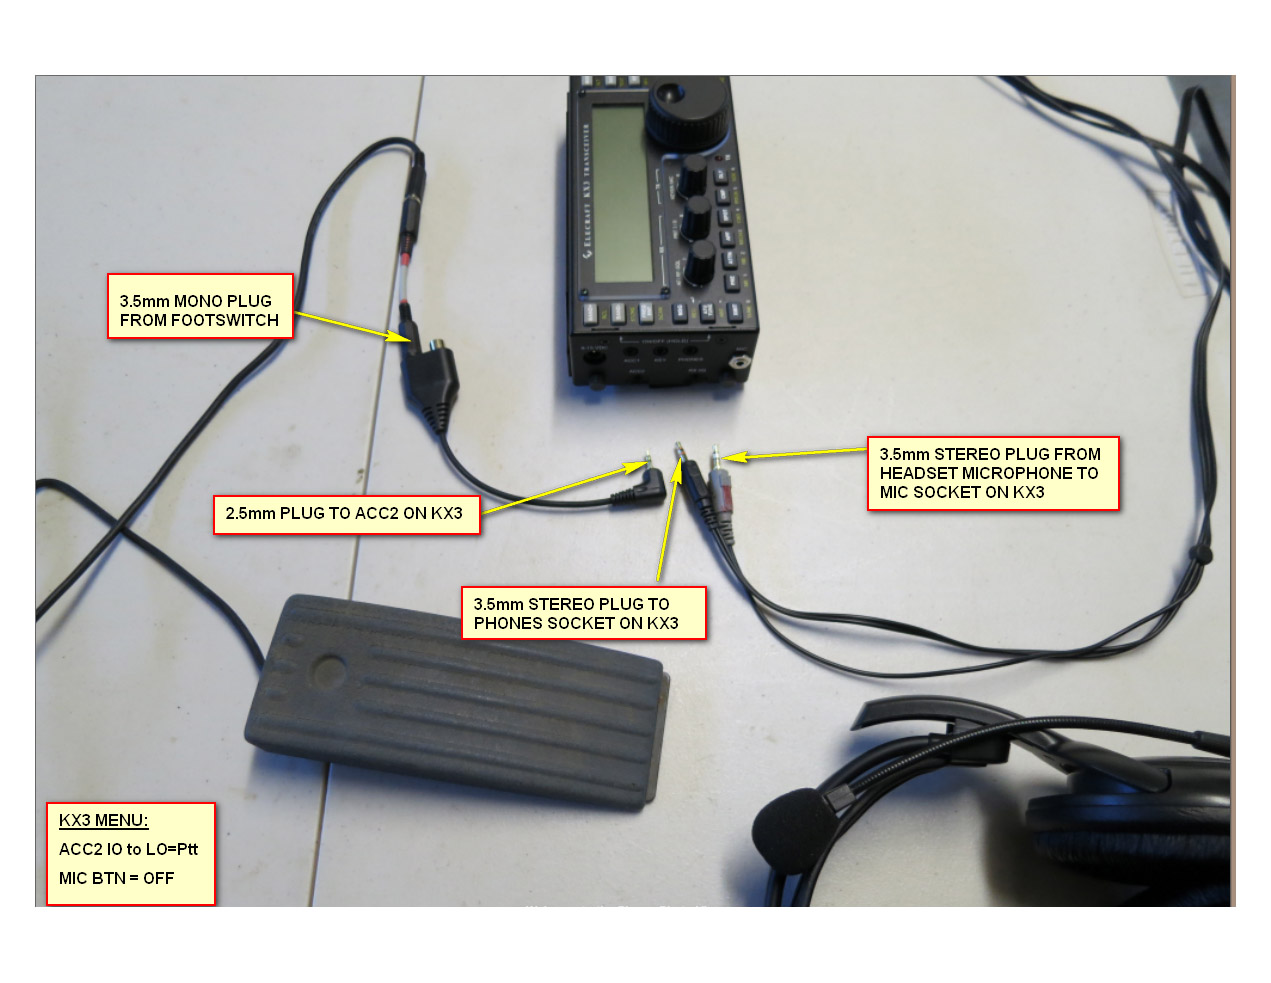 wiring a footswitch for use with a computer type headset on the kx3 [ 1271 x 983 Pixel ]